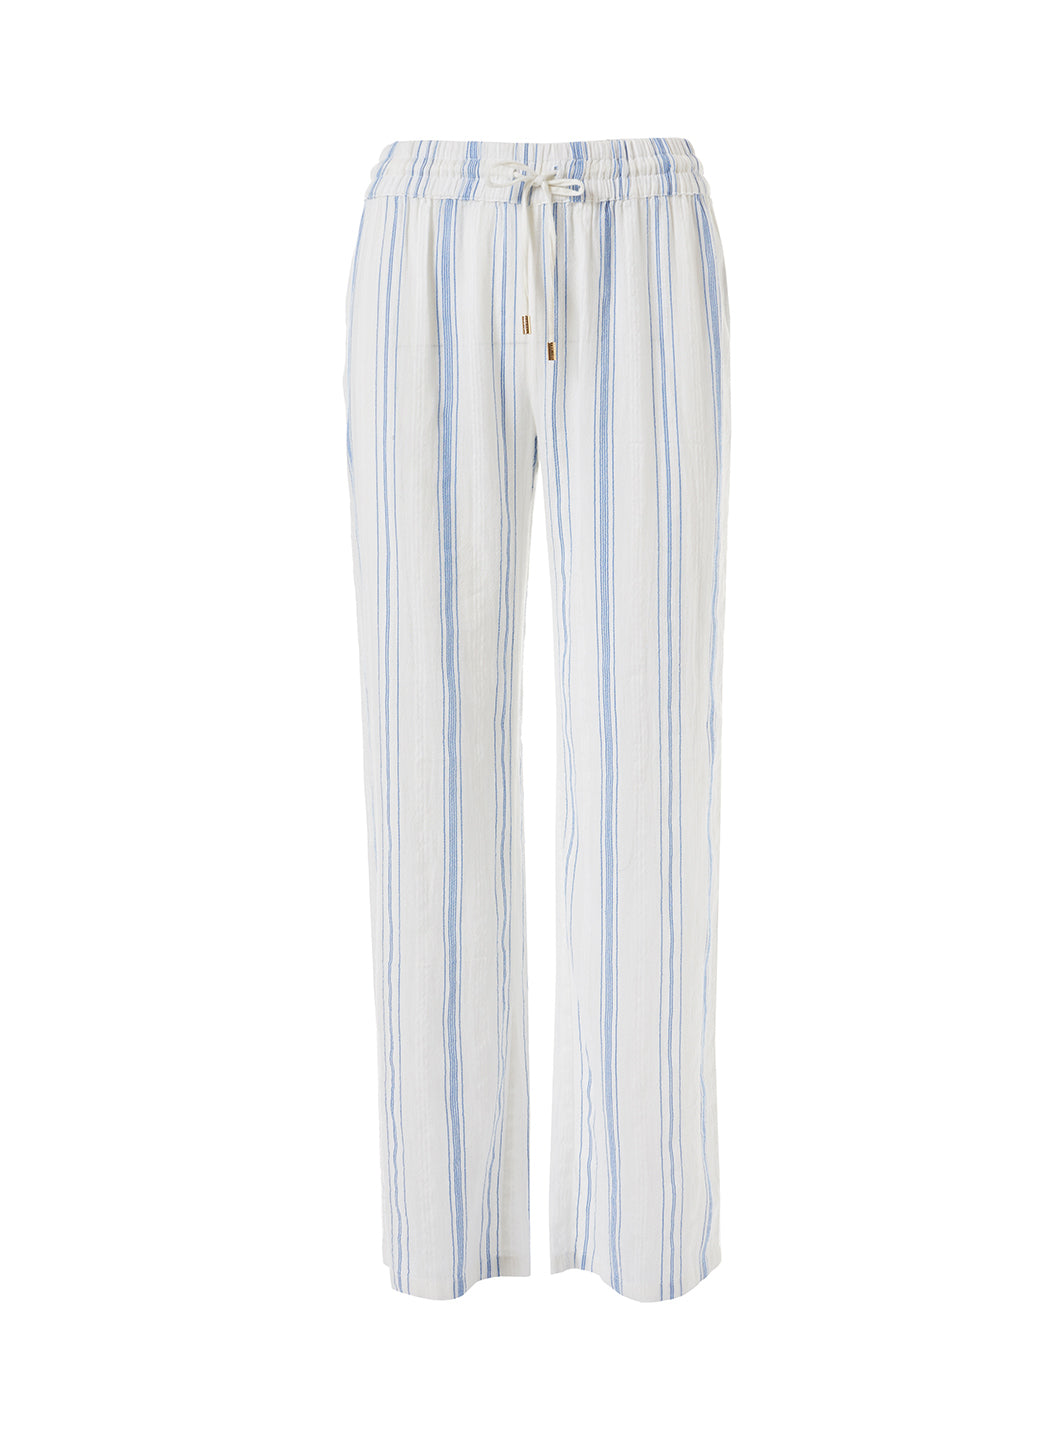 Krissy Blue Stripe Straight Leg Trouser